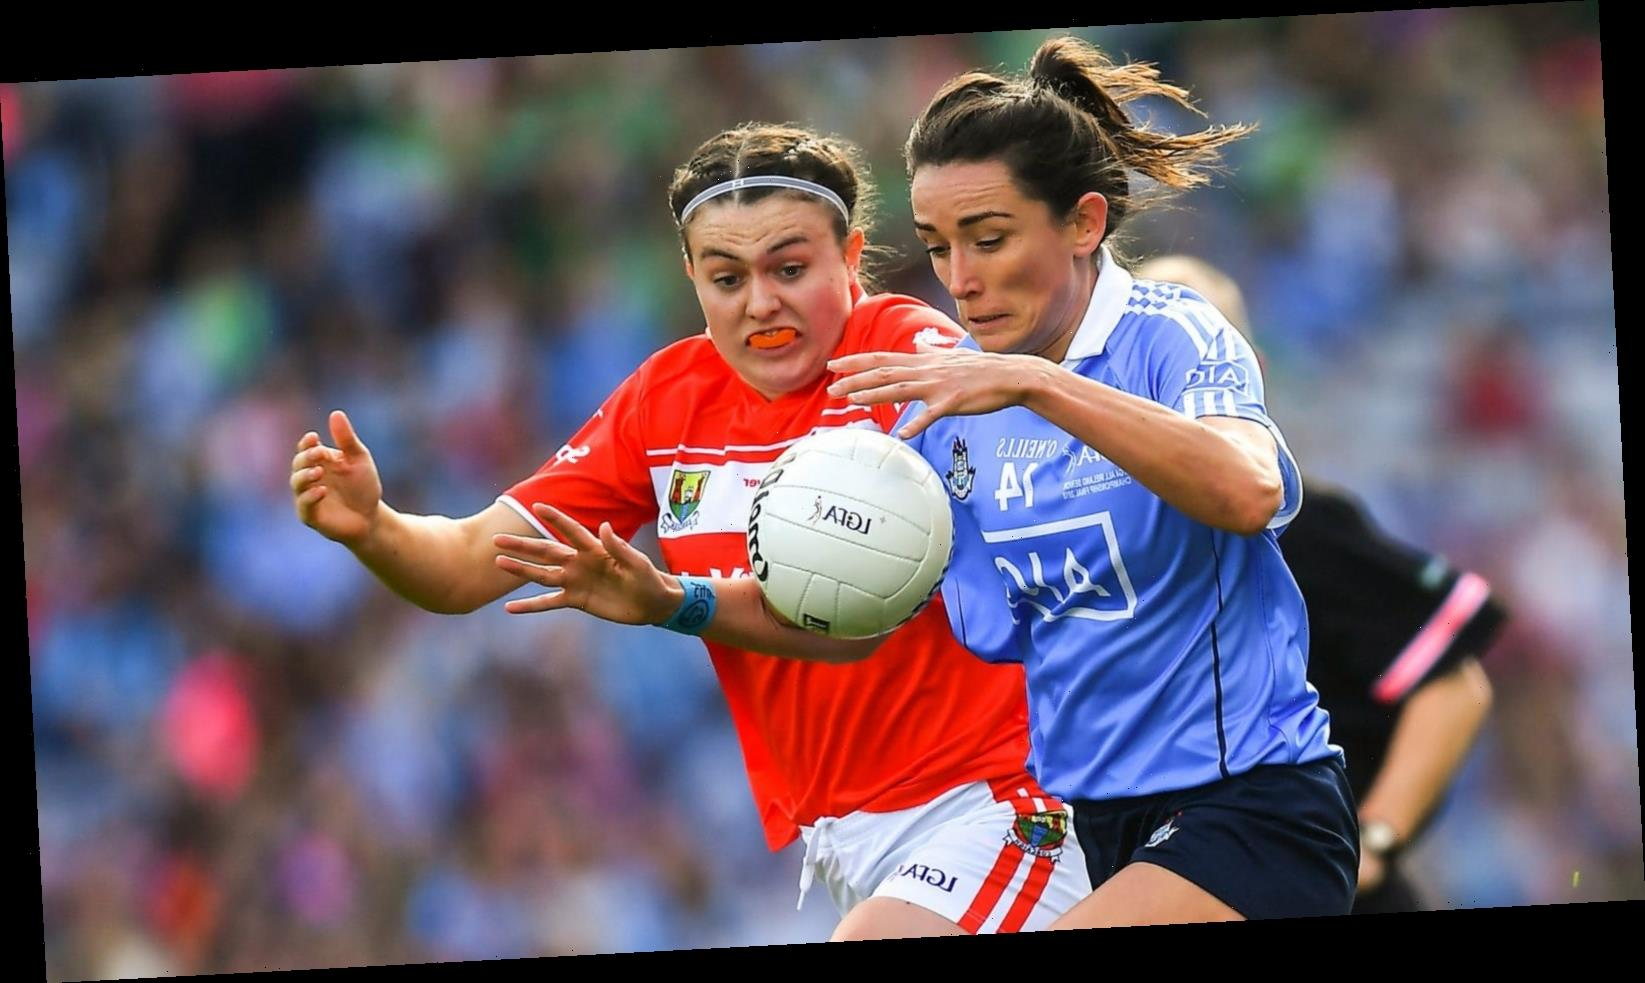 Sky Sports to show All-Ireland Ladies football final between Dublin and Cork